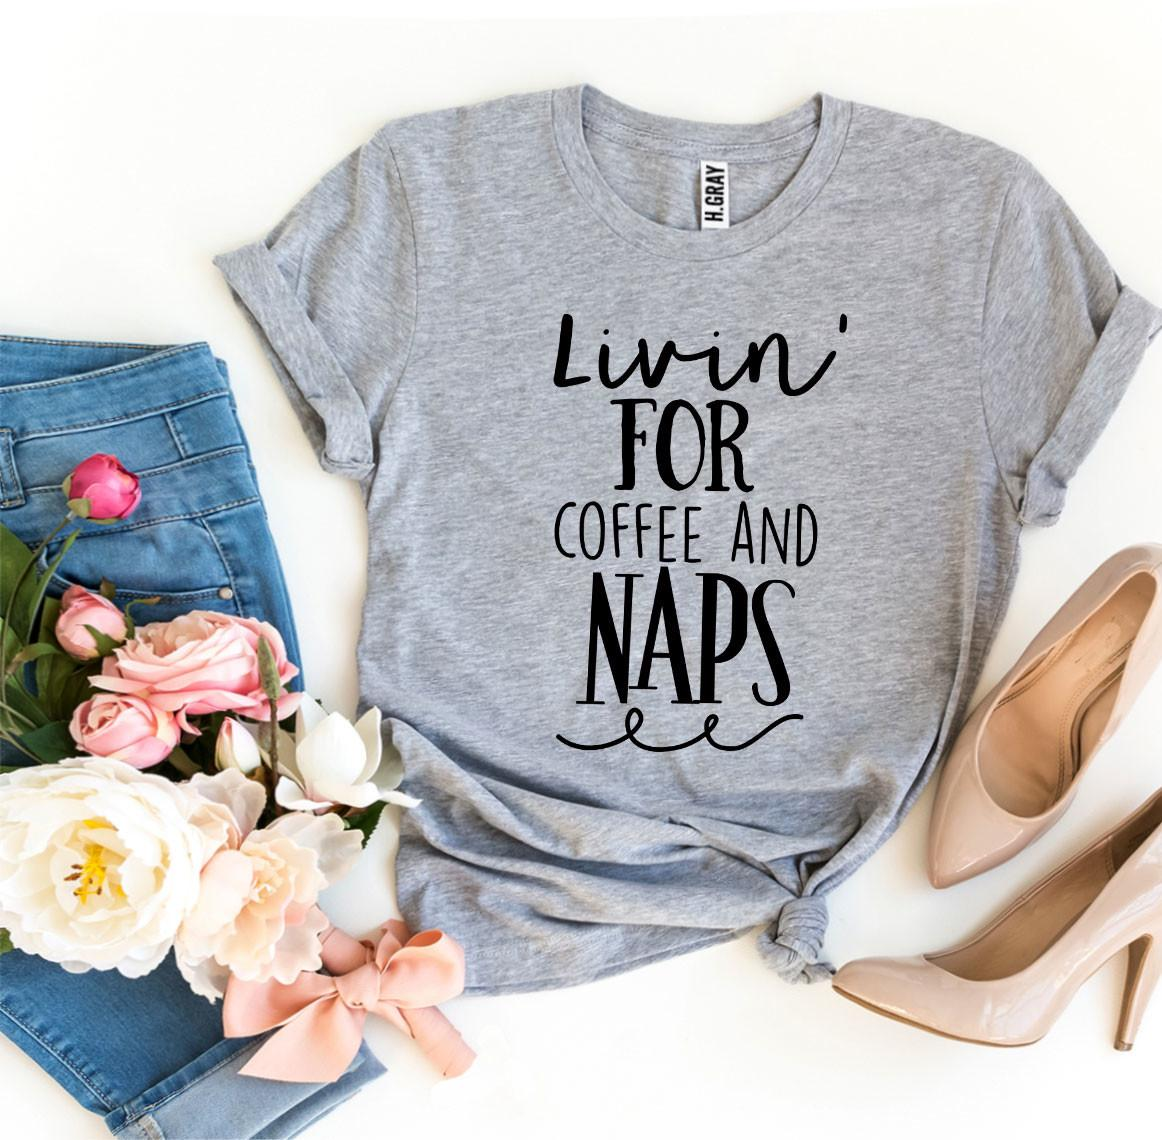 Livin For Coffee And Naps T-shirt - Cream and Sugar Coffee House & Brewing Co.